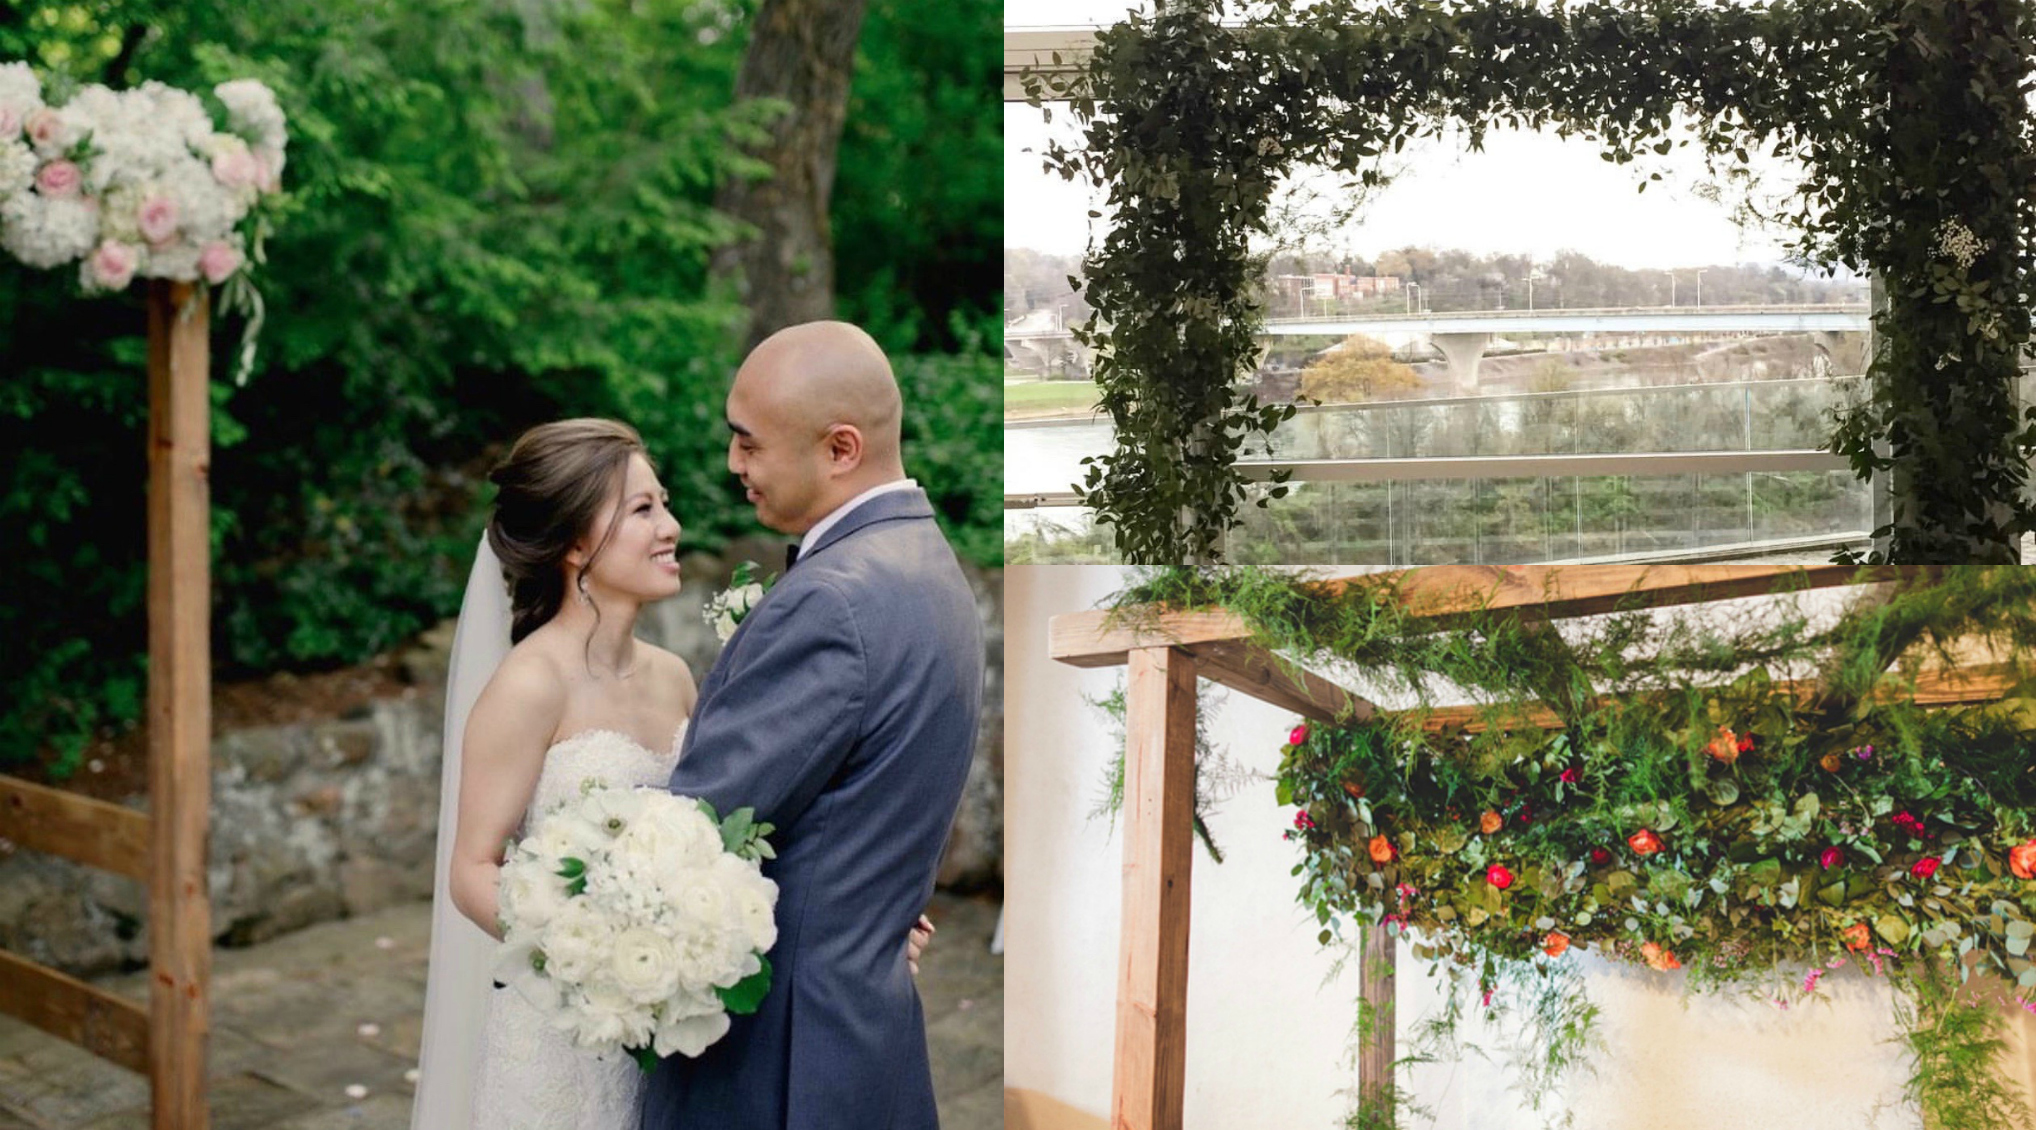 photography (left, top right, bottom right):  Arc Studio Photography ,  Fox & Fern ,  Rich Smith Photography